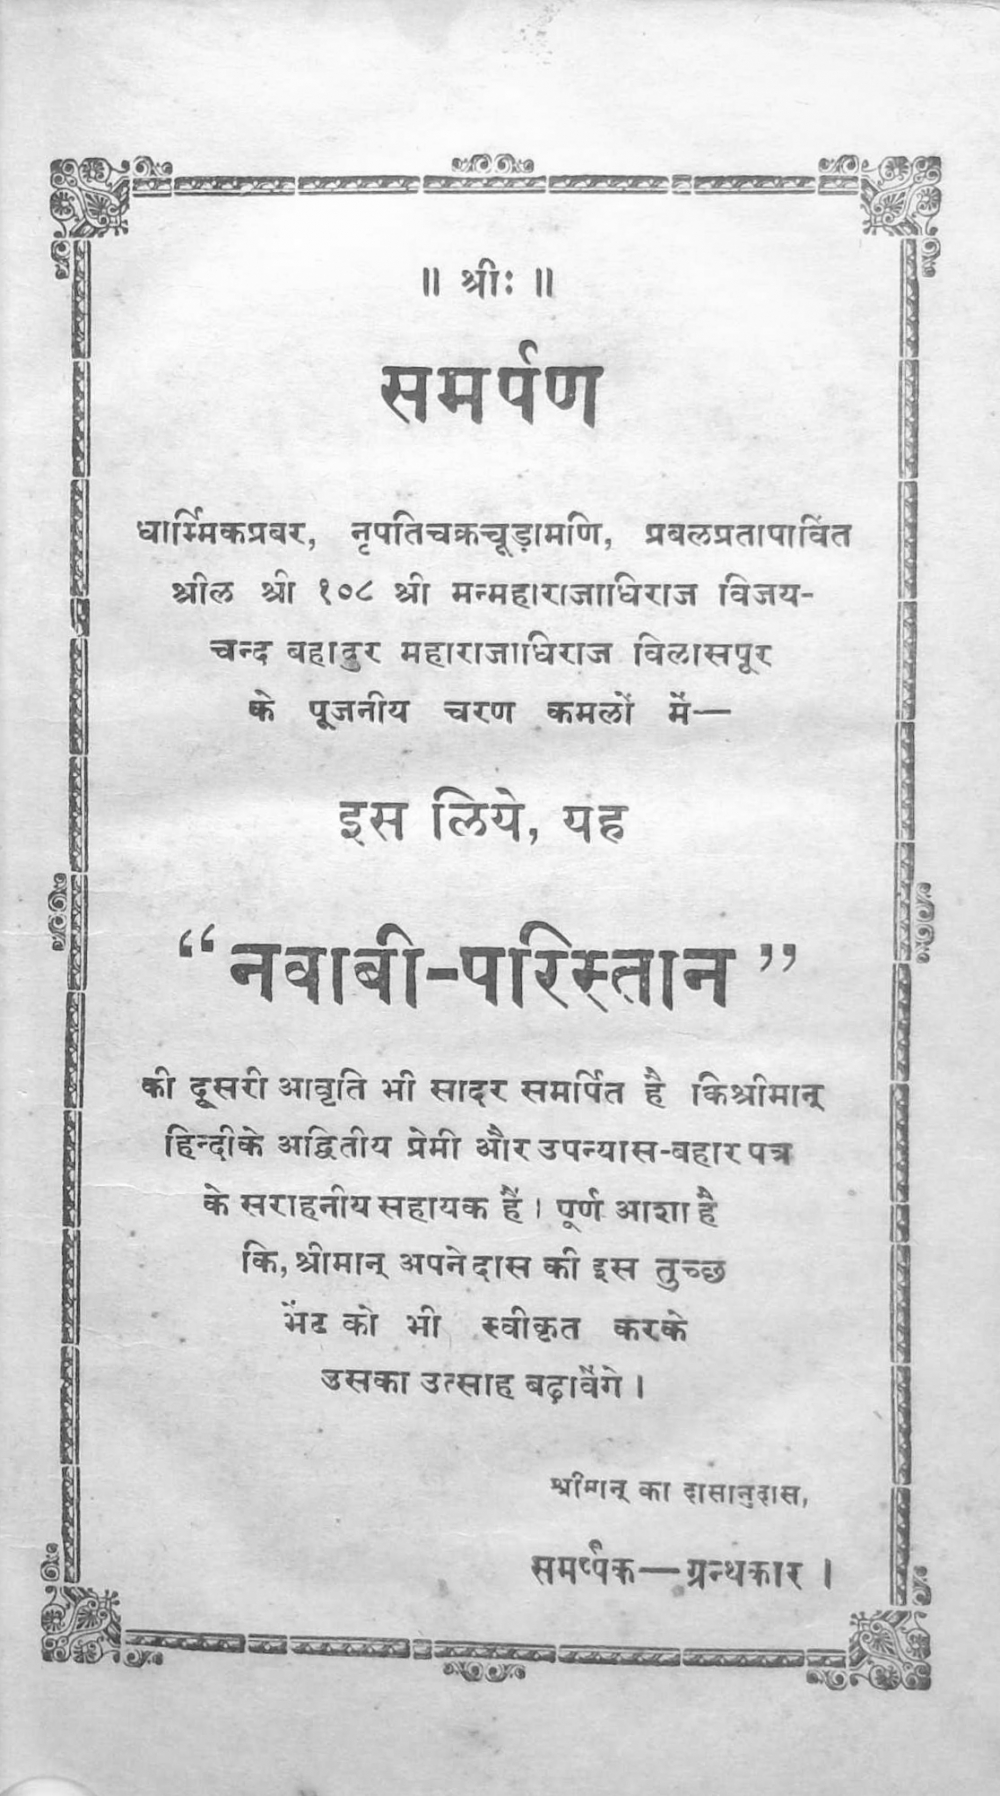 Fig. 5: Dedication page of Nawabi Paristan (1908) presents another example of calling upon a wealthy patron for 'encouragement'. Such dedications were not uncommon for Hindi books at least until the 1920s